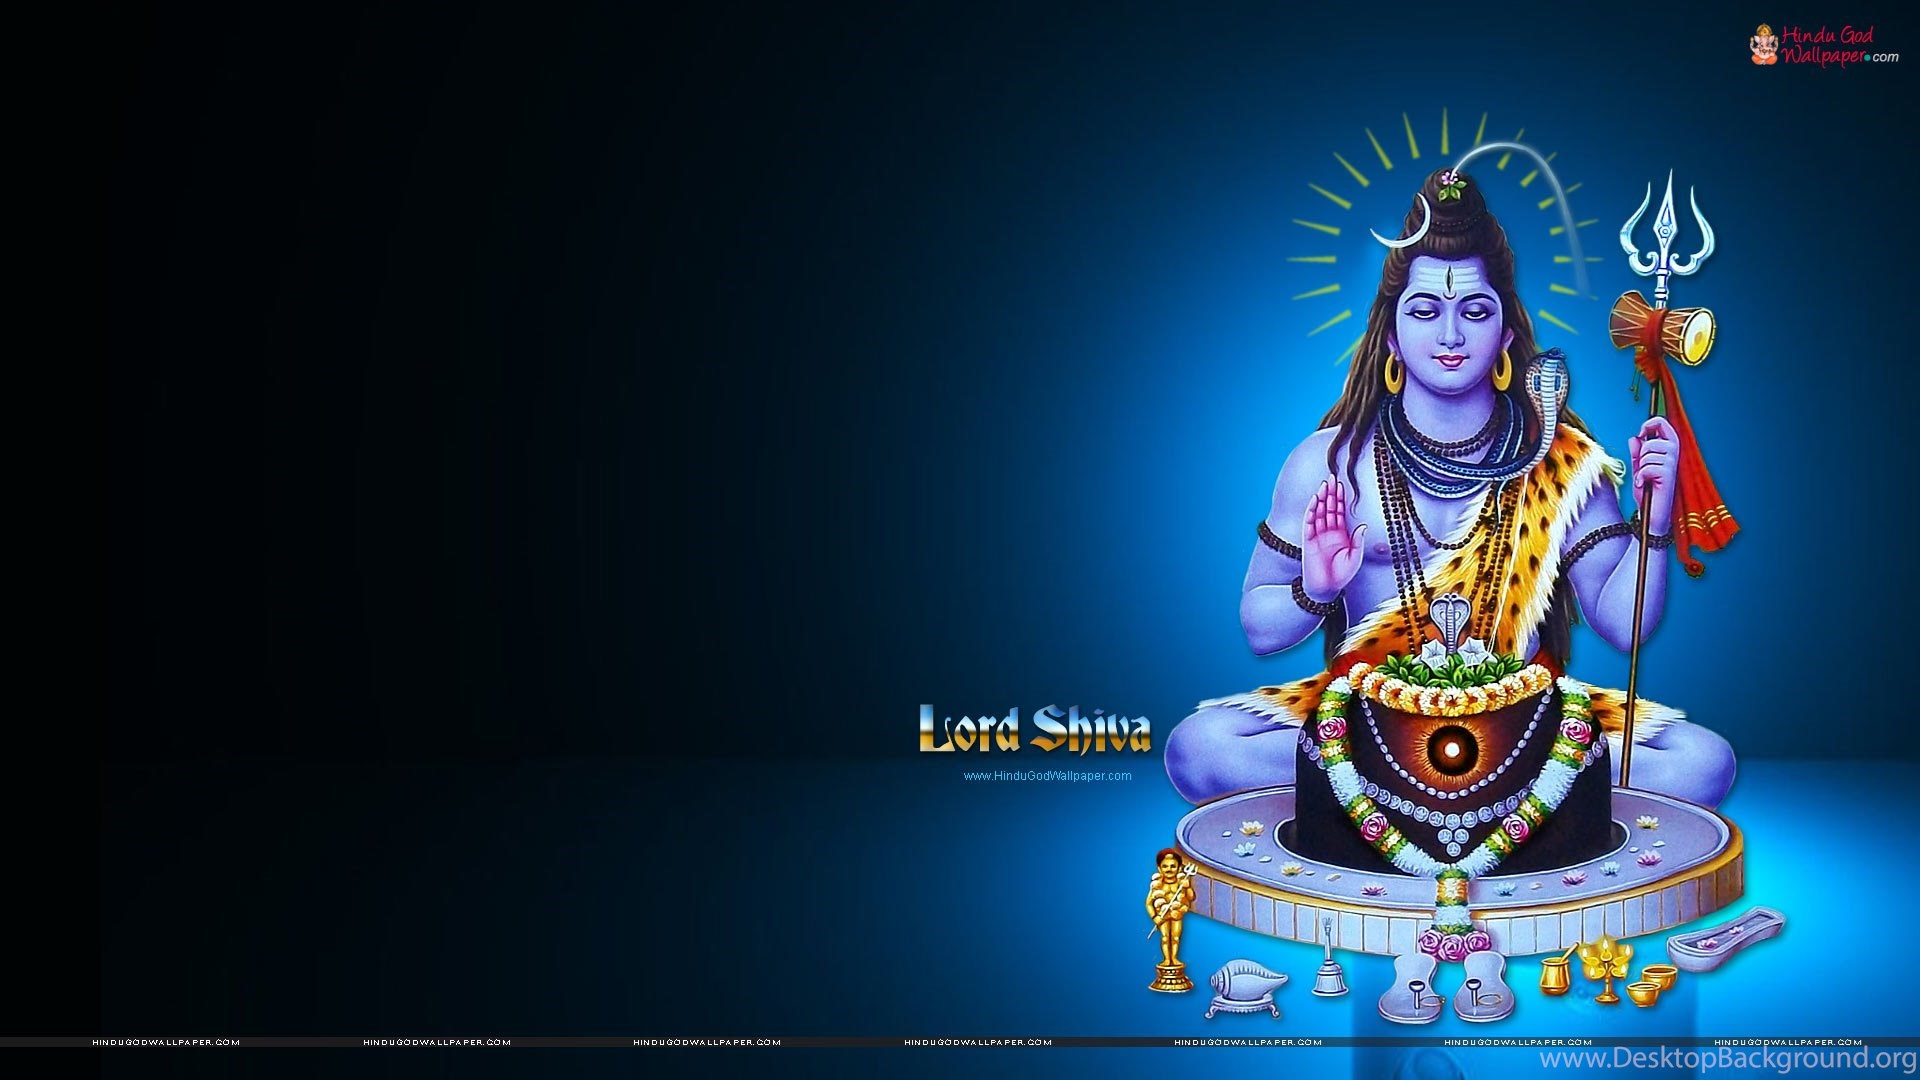 Lord Shiva Creative Hd Wallpapers For Free Download Lord: Lord Shiva HD Wallpapers 1080p Download Desktop Background